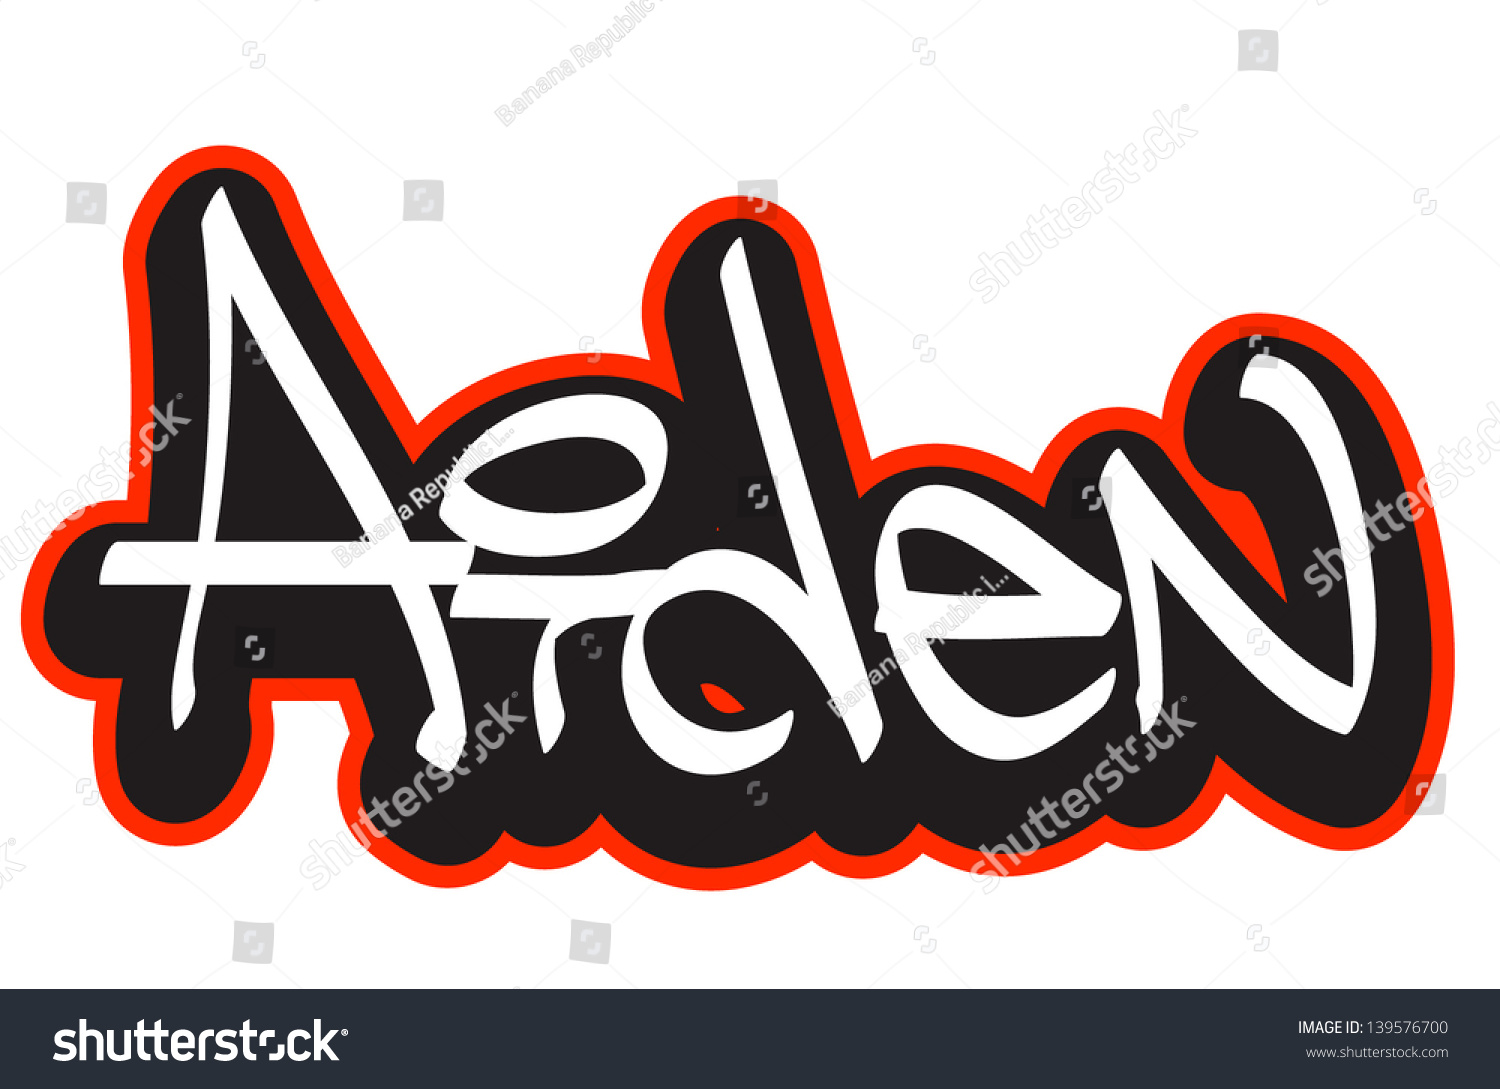 Aiden graffiti font style name hip hop design template for t shirt